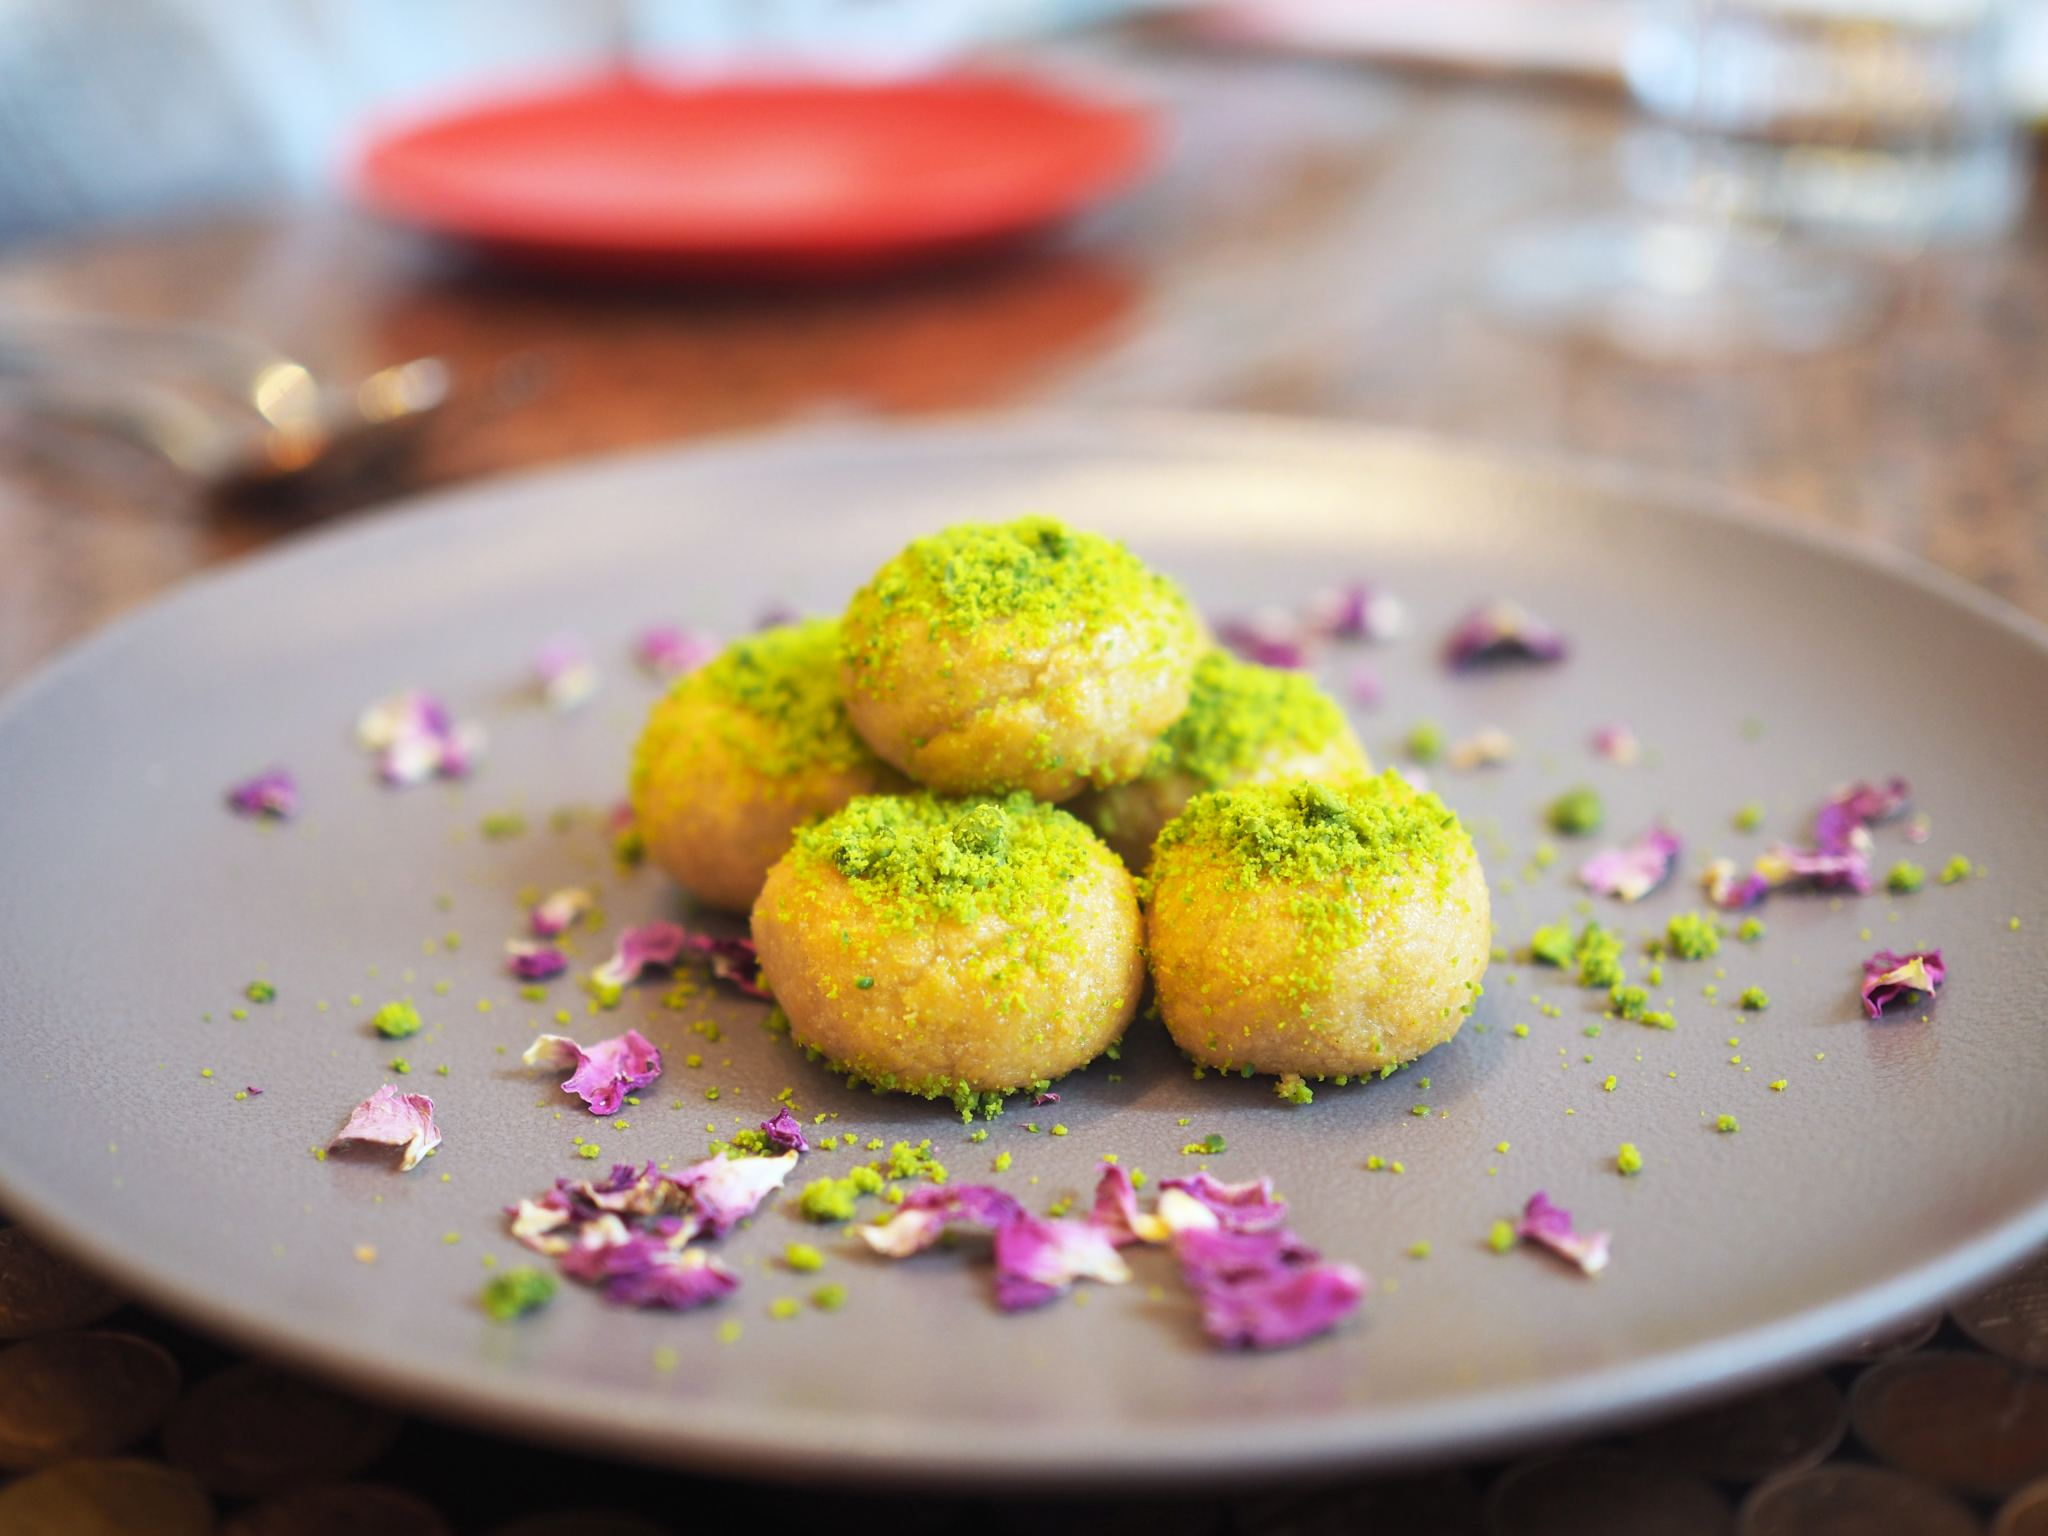 Vegan Menu By Ravinder Bhoghal - W London